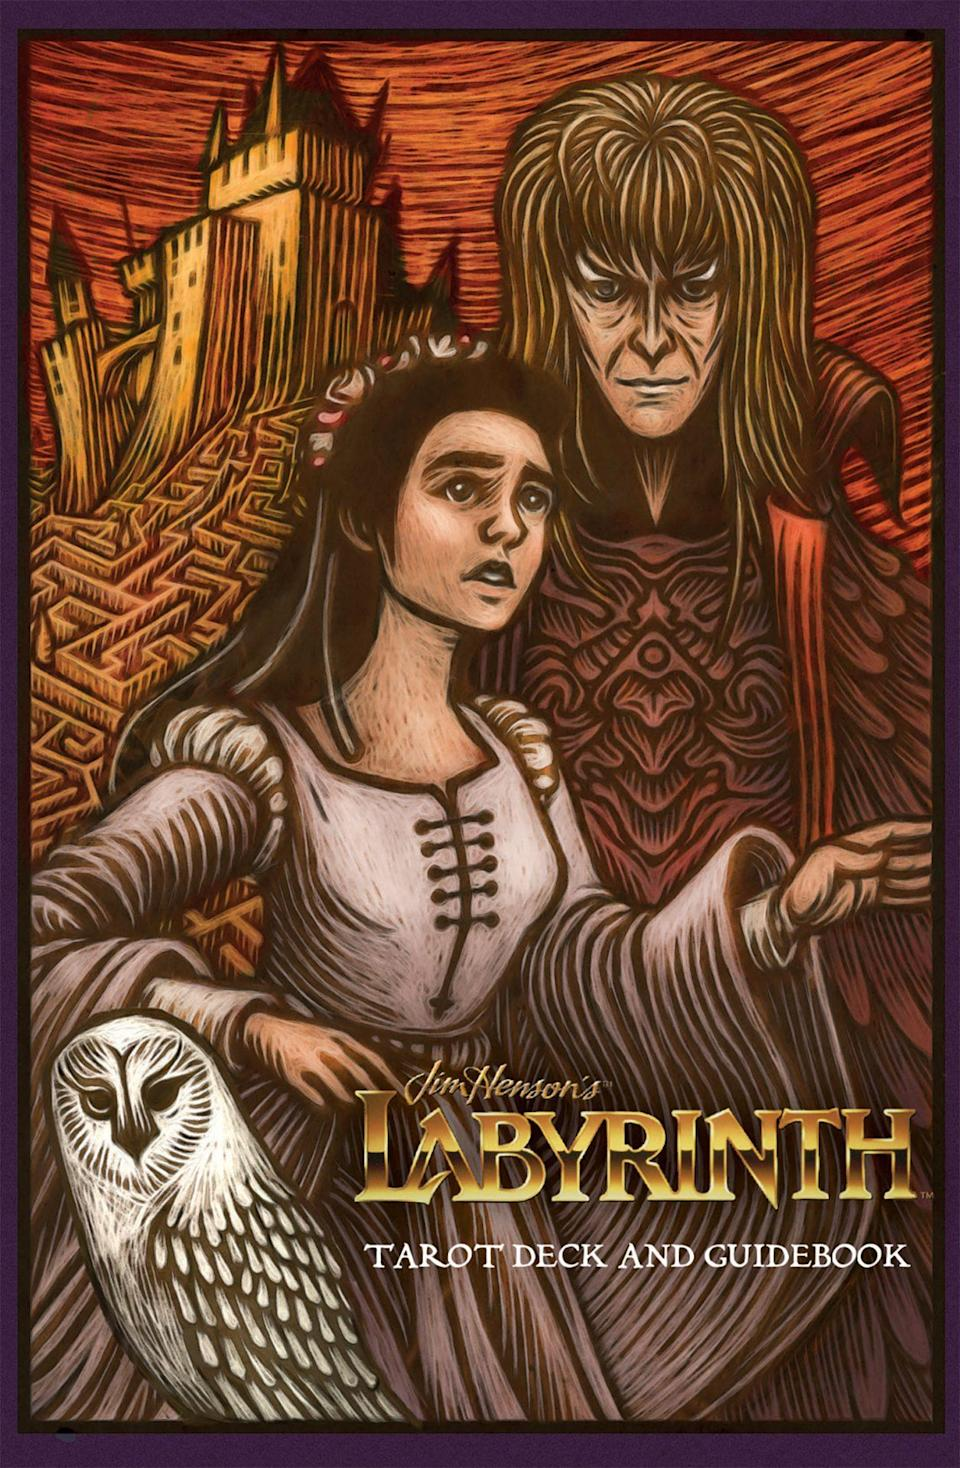 The illustrated cover of the Labyrinth tarot deck